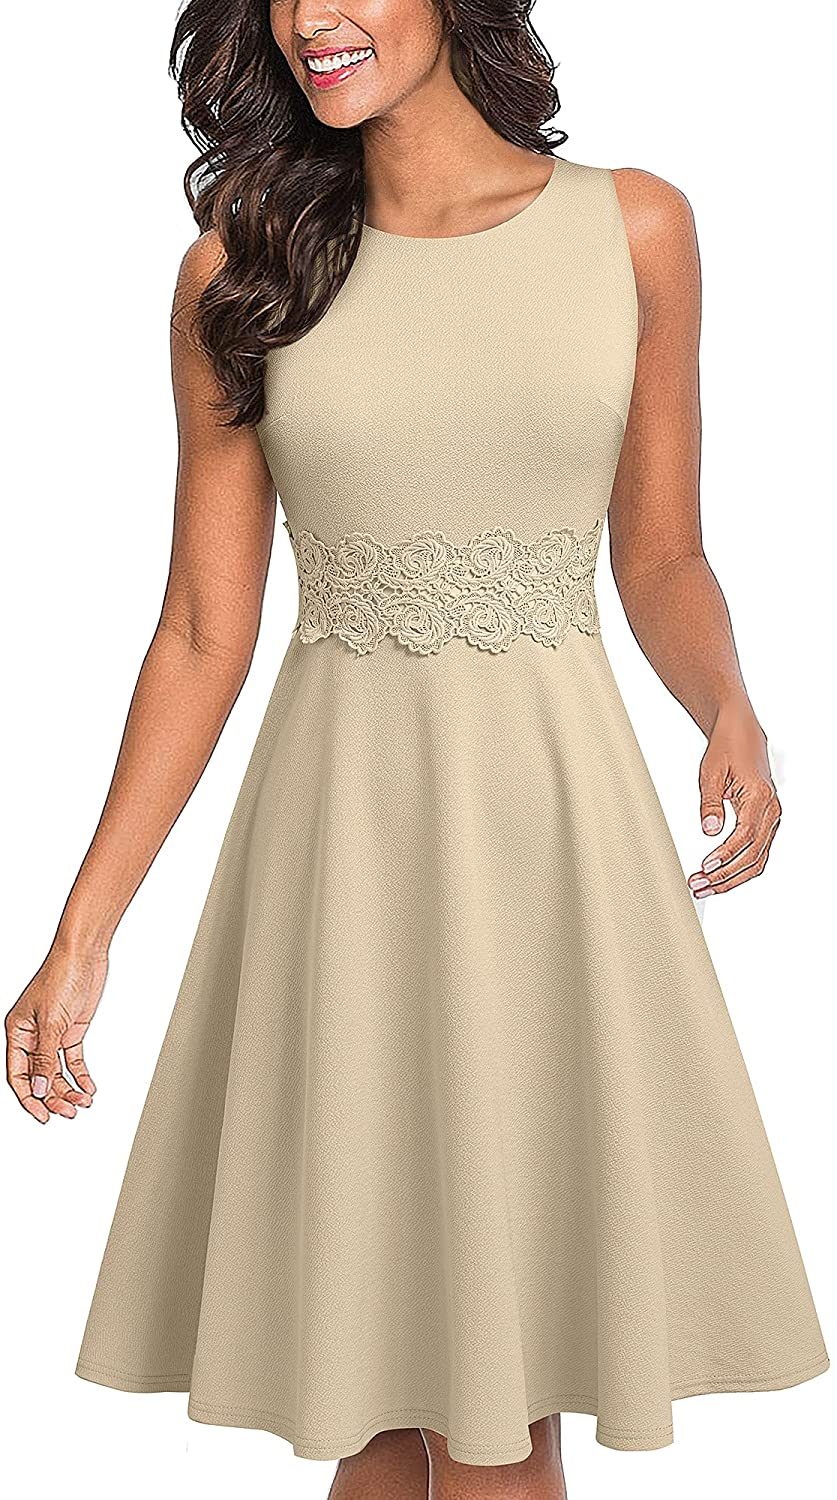 HOMEYEE Women's Some reservation Sleeveless Cocktail Embroidery Summ Party Max 72% OFF A-Line